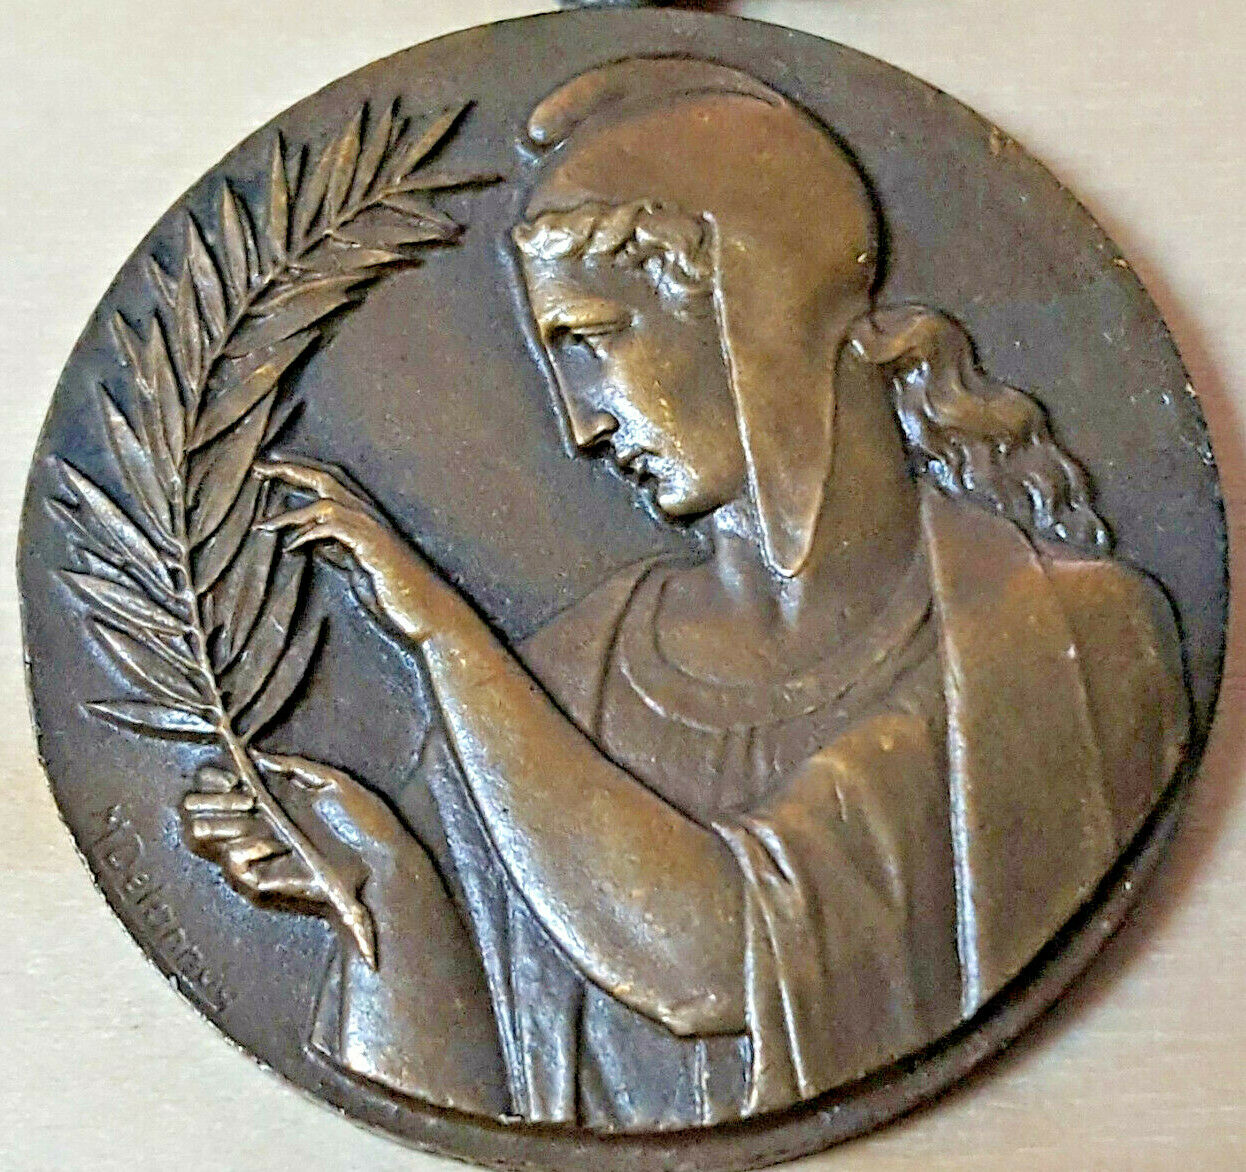 WW2 MEDAL OF FRENCH RECOGNITION RECONNAISSANCE CIVILIAN WAR HELPER MEDAL TYPE 2